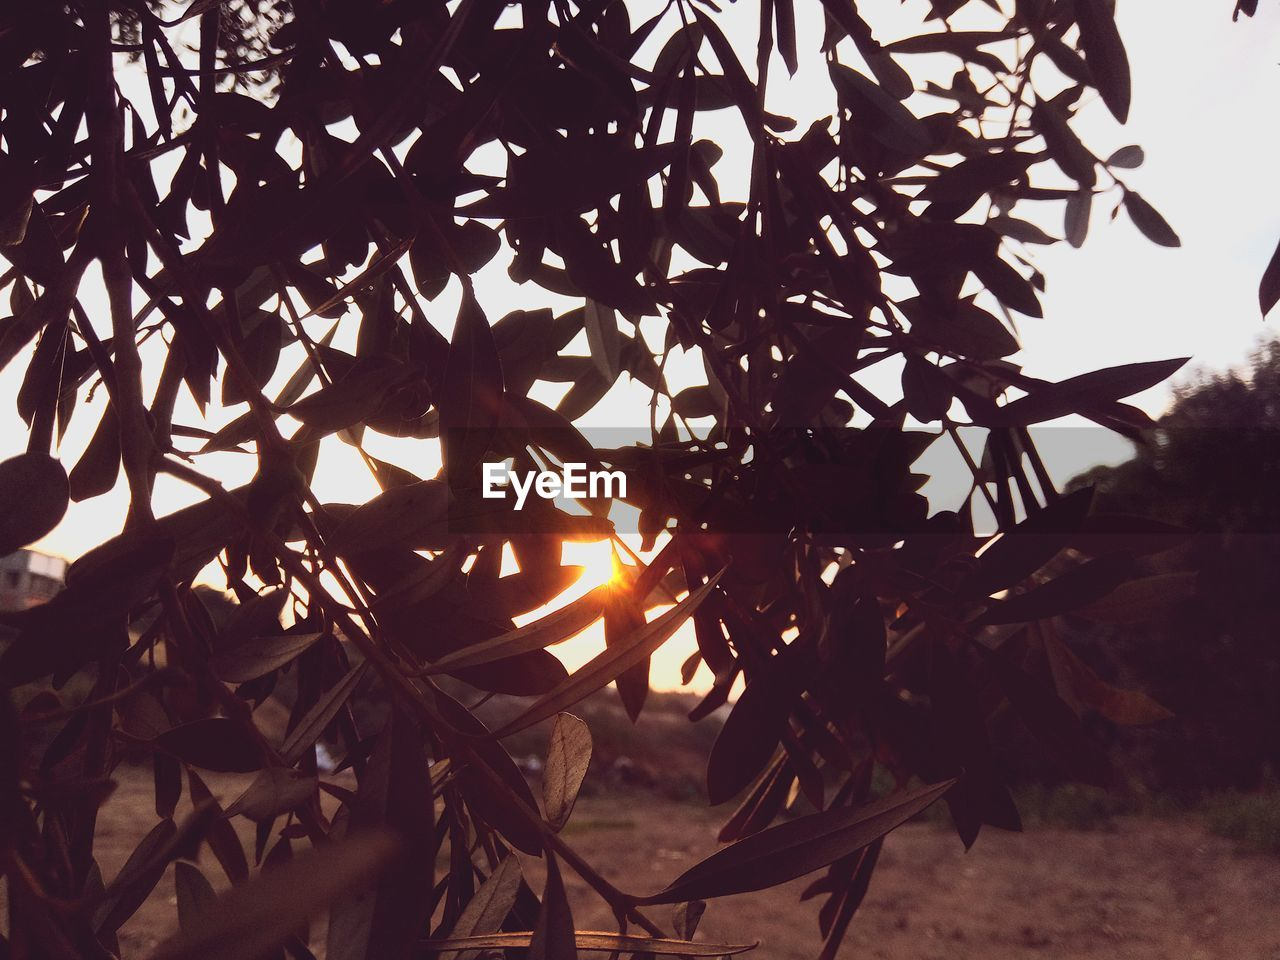 plant, sky, nature, tree, sunlight, beauty in nature, no people, growth, leaf, sun, tranquility, plant part, branch, focus on foreground, day, outdoors, close-up, sunset, silhouette, land, change, leaves, streaming